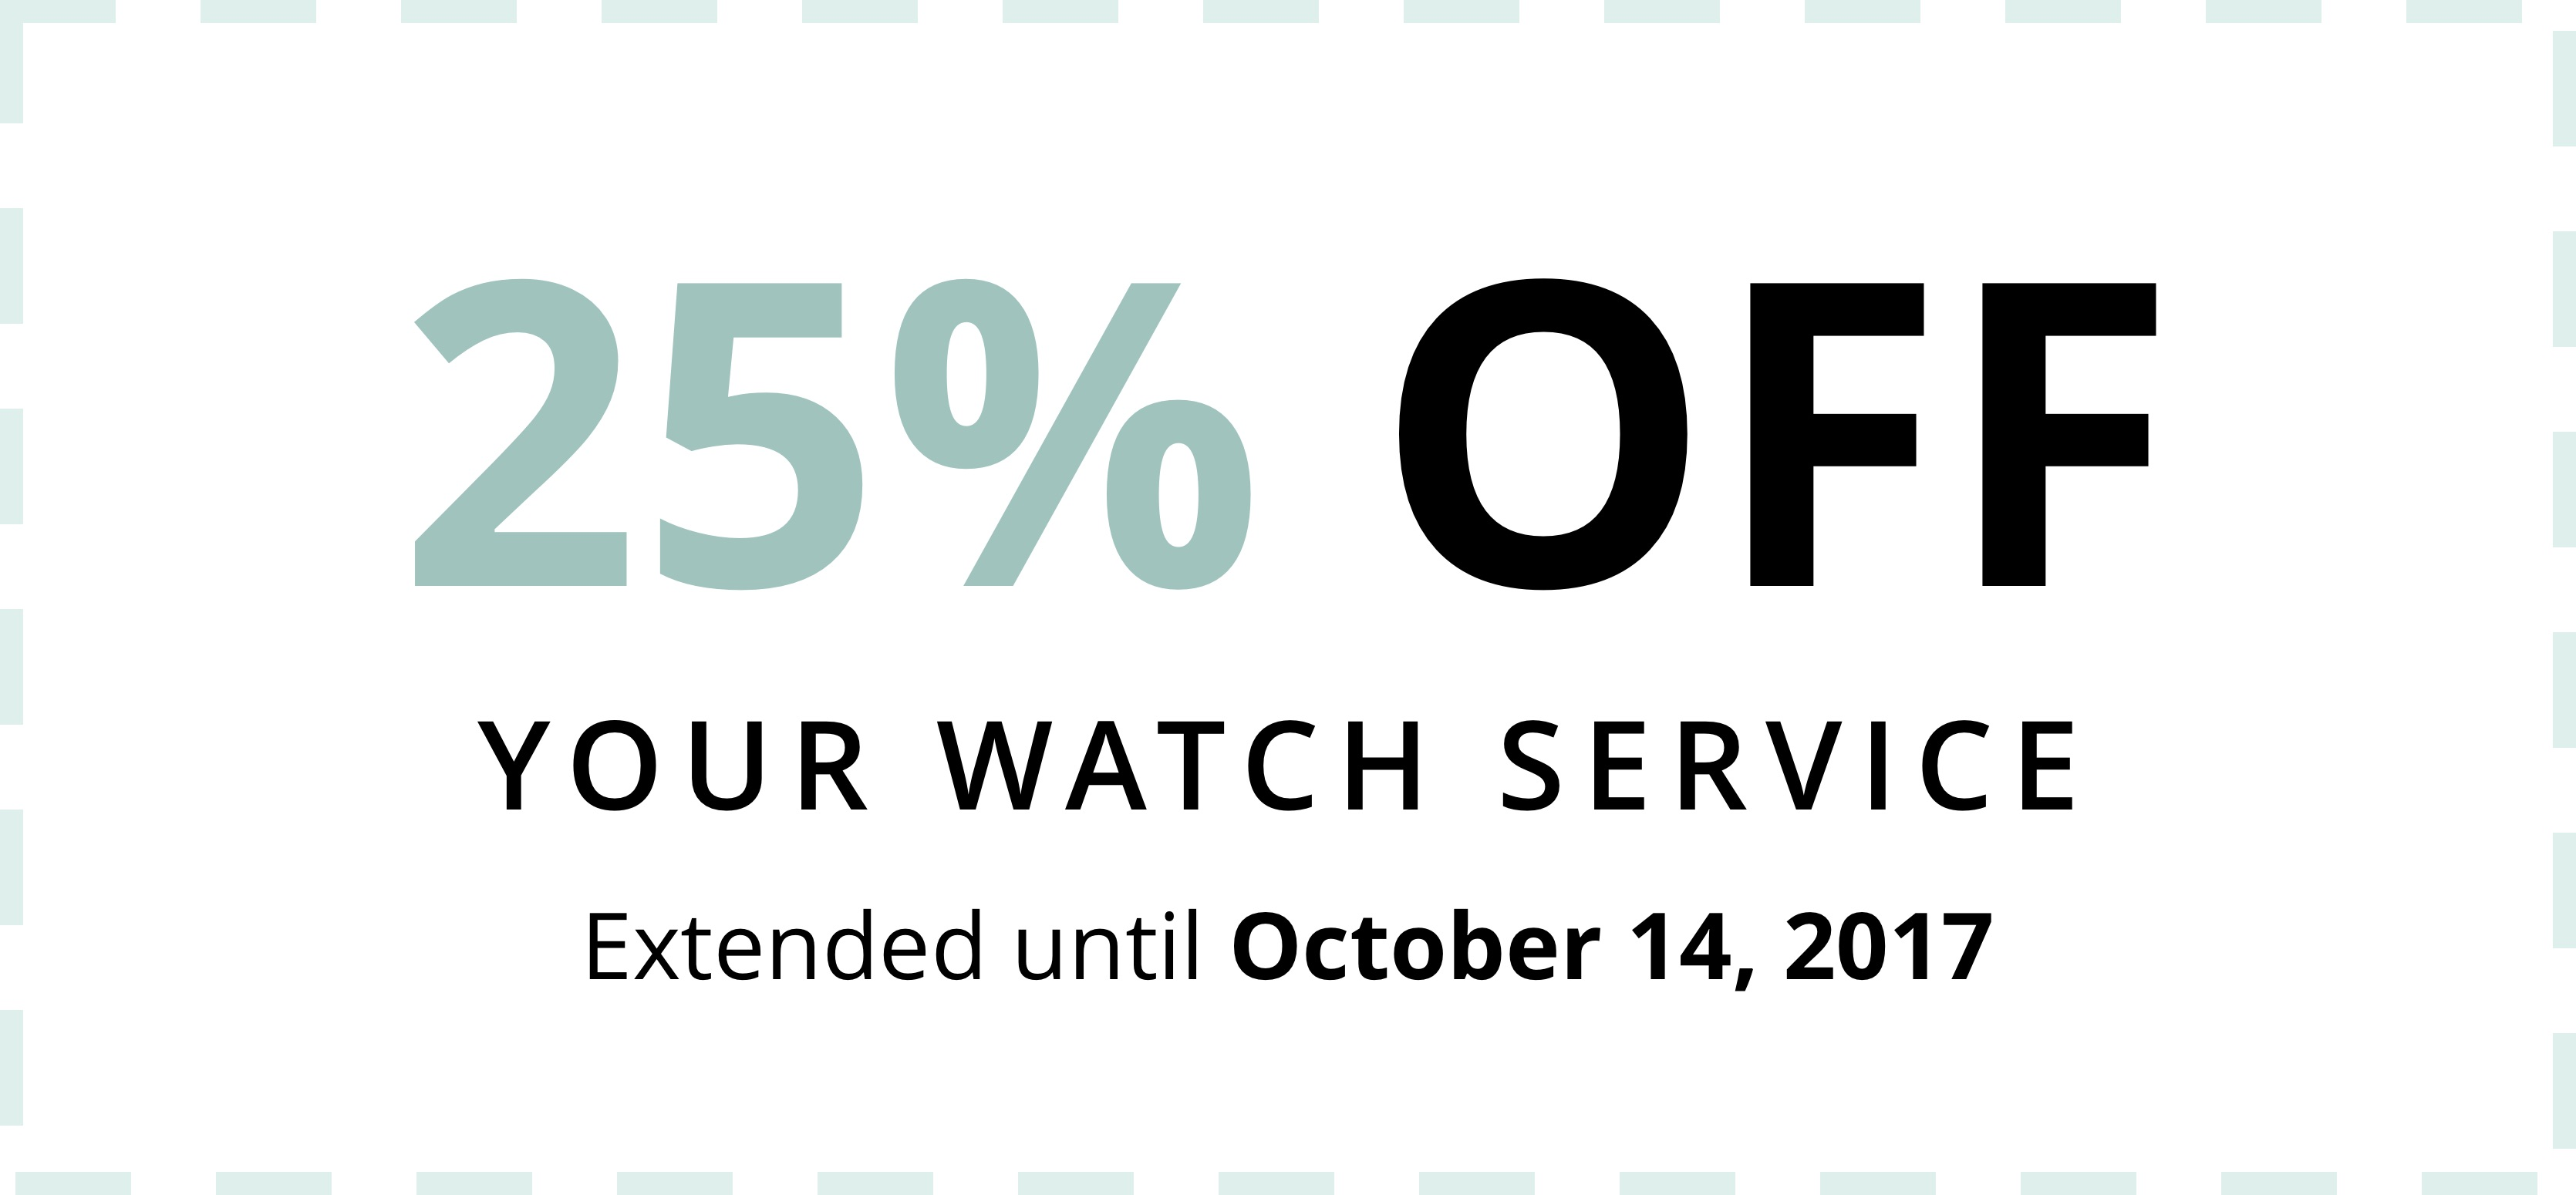 WATCH SERVICE PROMO EXTENDED